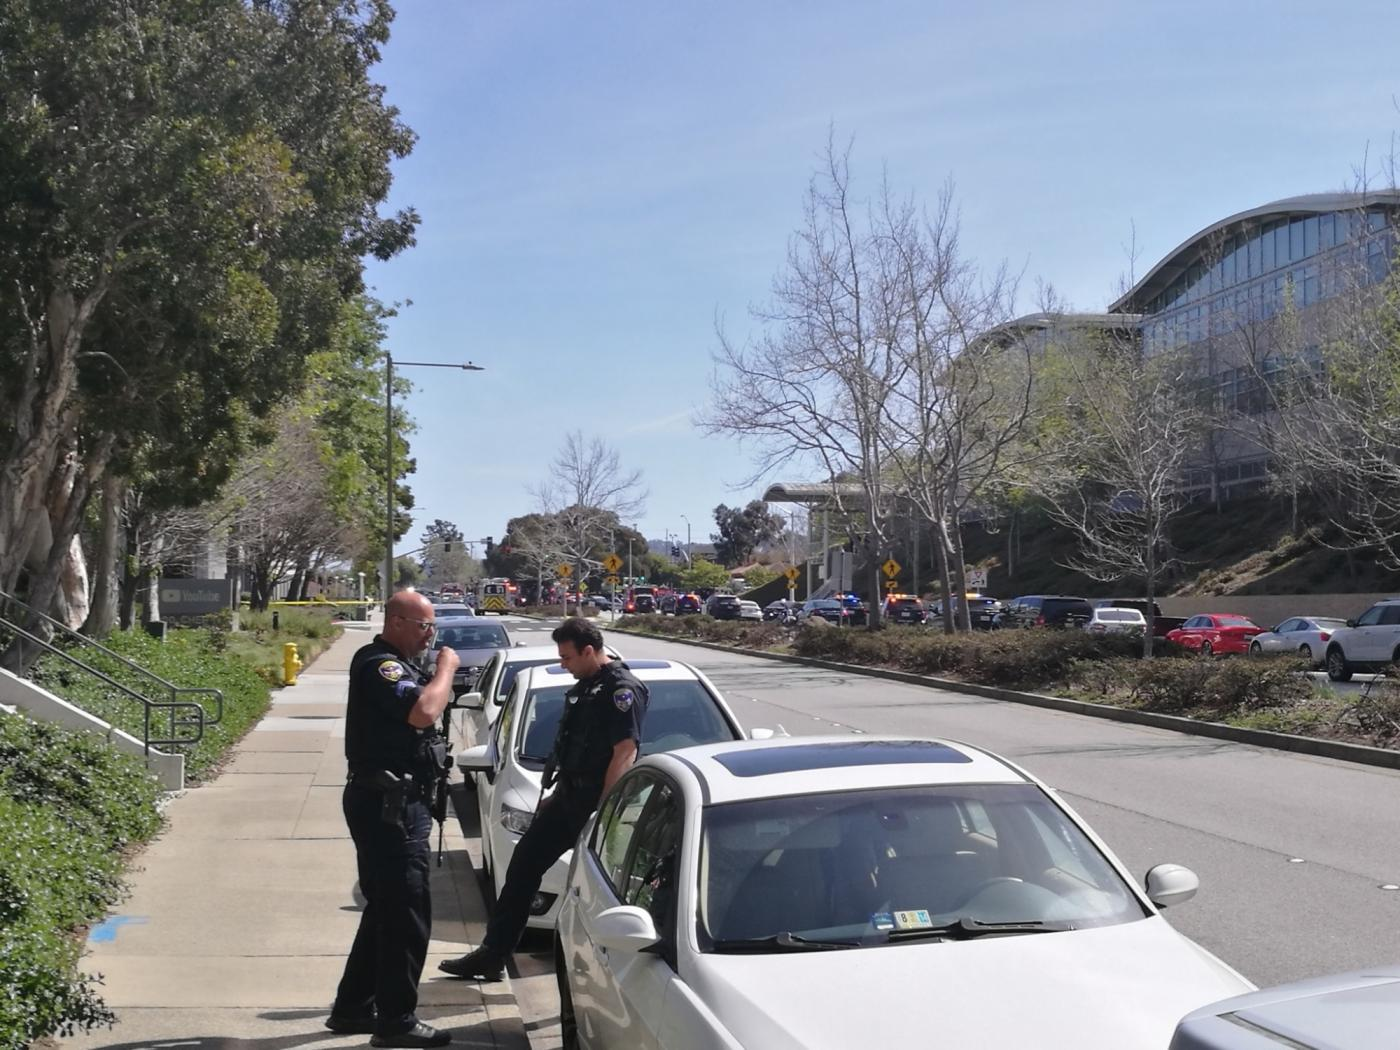 SAN BRUNO (U.S.), April 3, 2018 (Xinhua) -- Police officers stand guard near the headquarters of YouTube in San Bruno, California, the United States, April 3, 2018. Police in north California are responding to a reported shooting at the headquarters of the world's largest online video network YouTube Tuesday afternoon, authorities said. (Xinhua/Wu Xiaoling/IANS) by .